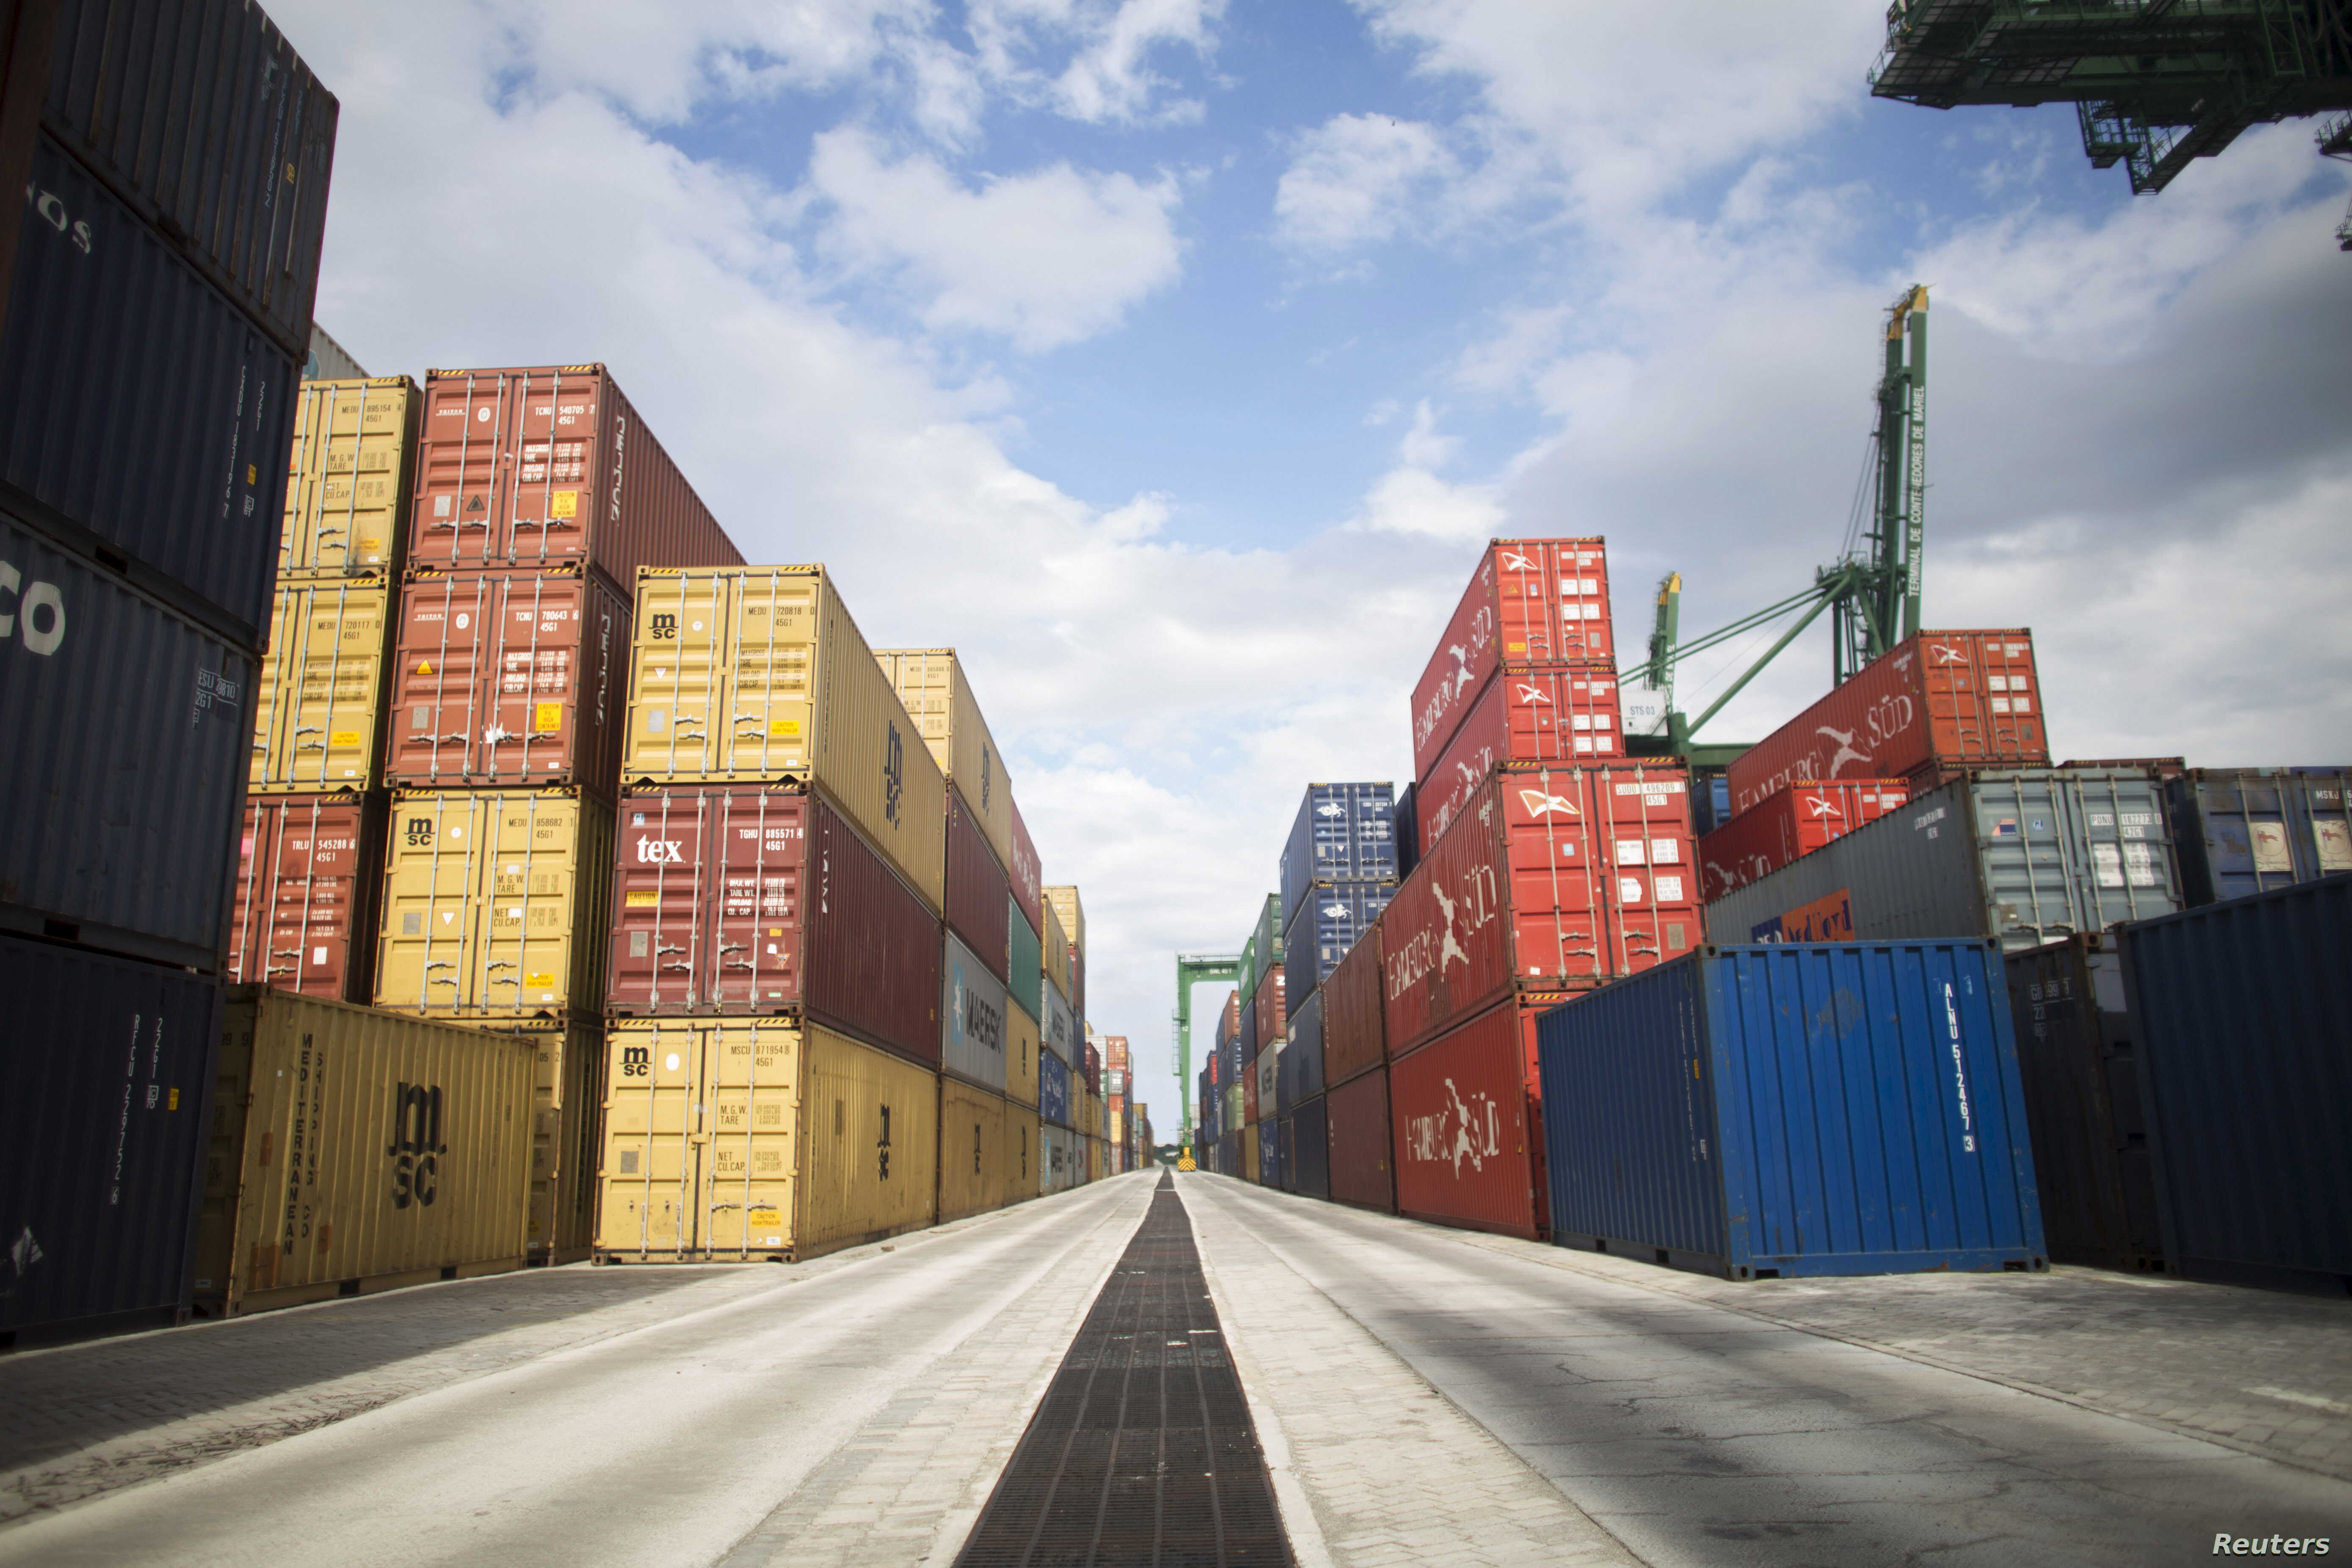 FILE - Containers are seen at the Mariel port in the outskirts of Havana. The port would be very beneficial to U.S. export industries U.S. ports with access to Mariel's shipping lanes, says James Williams, president of the Engage Cuba coalition.